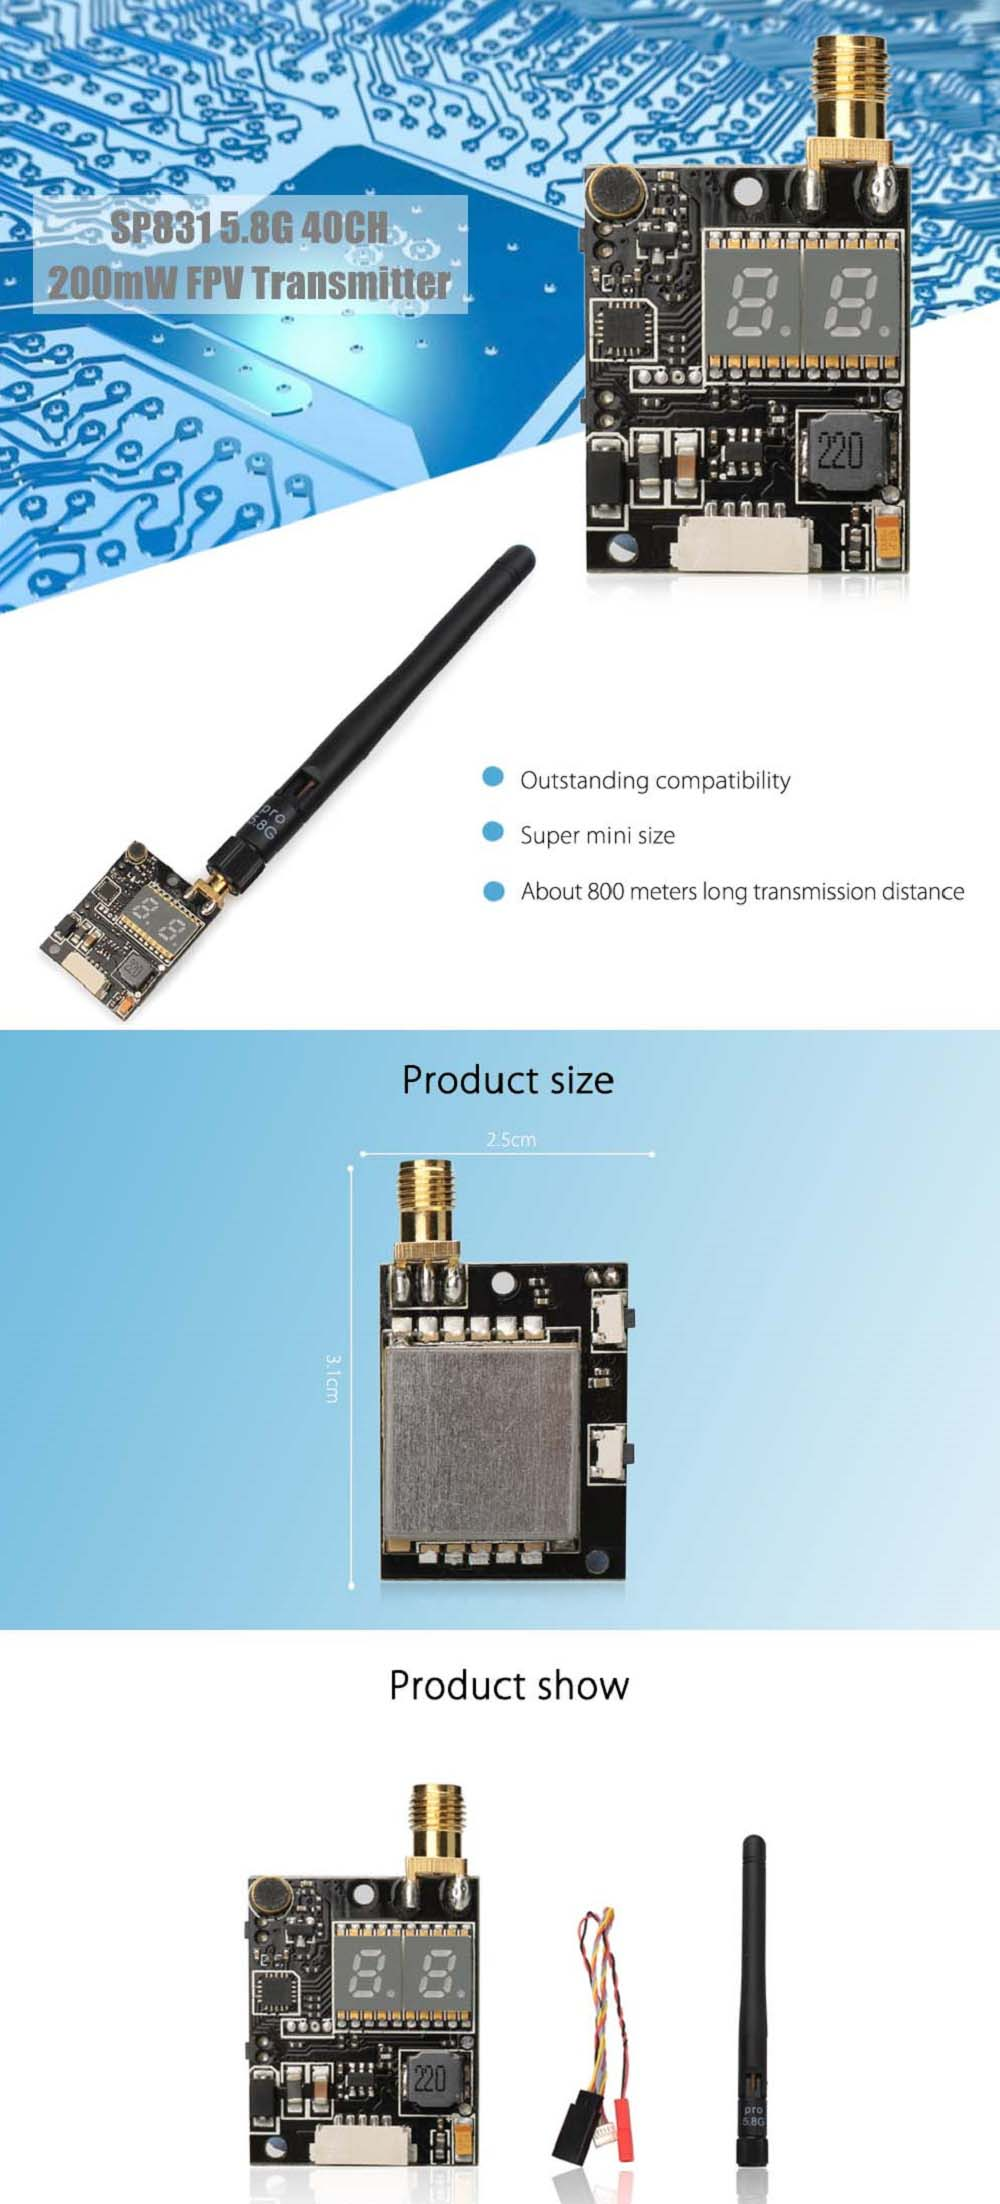 SP831 5.8G 40CH 200mW FPV Transmitter SMA Right Angle Connector